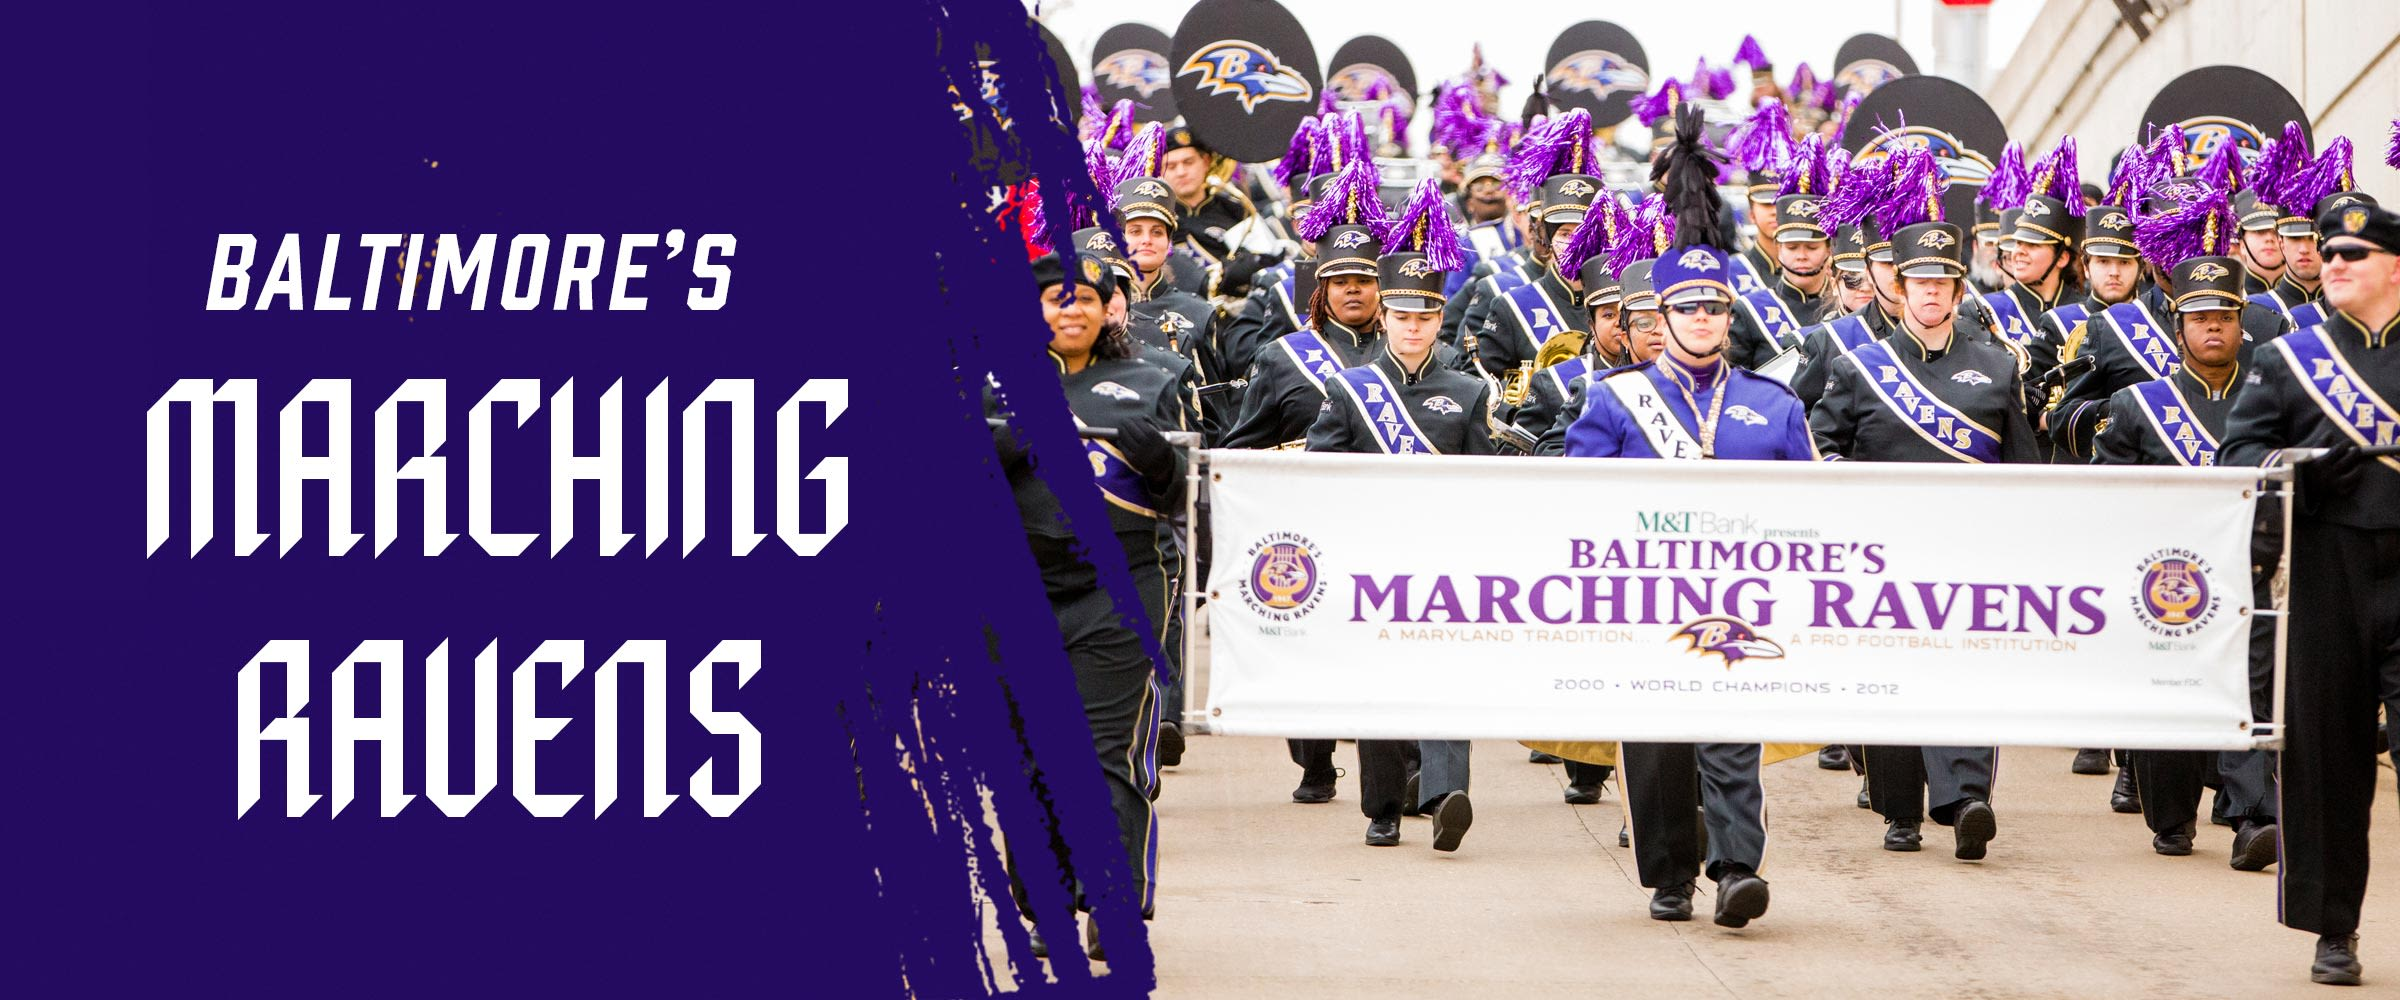 Marching-Ravens2400x1000-Header